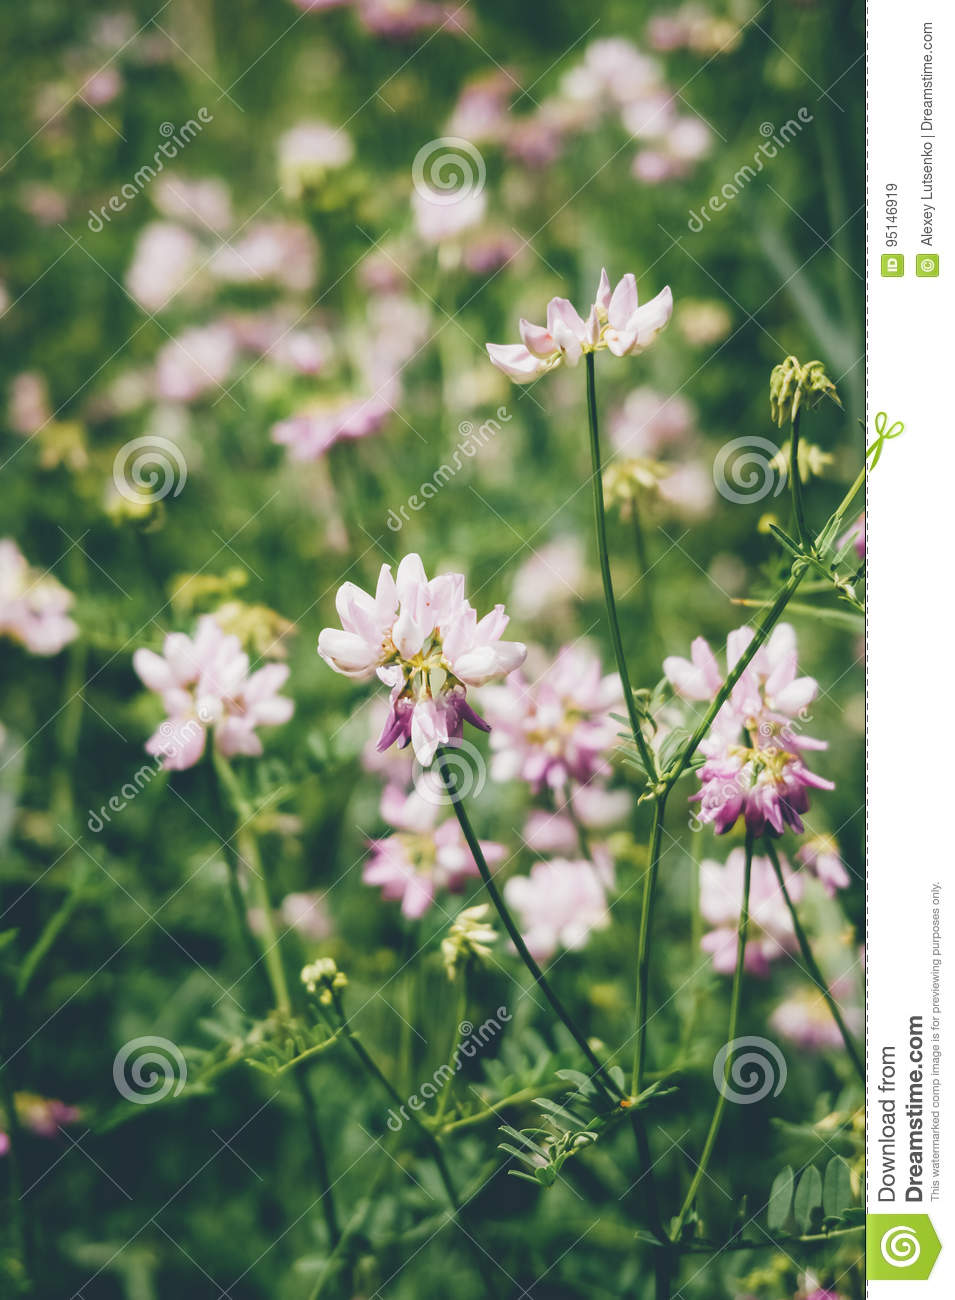 Wild pink flowers in green grass stock image image of spring wild pink flowers in green grass mightylinksfo